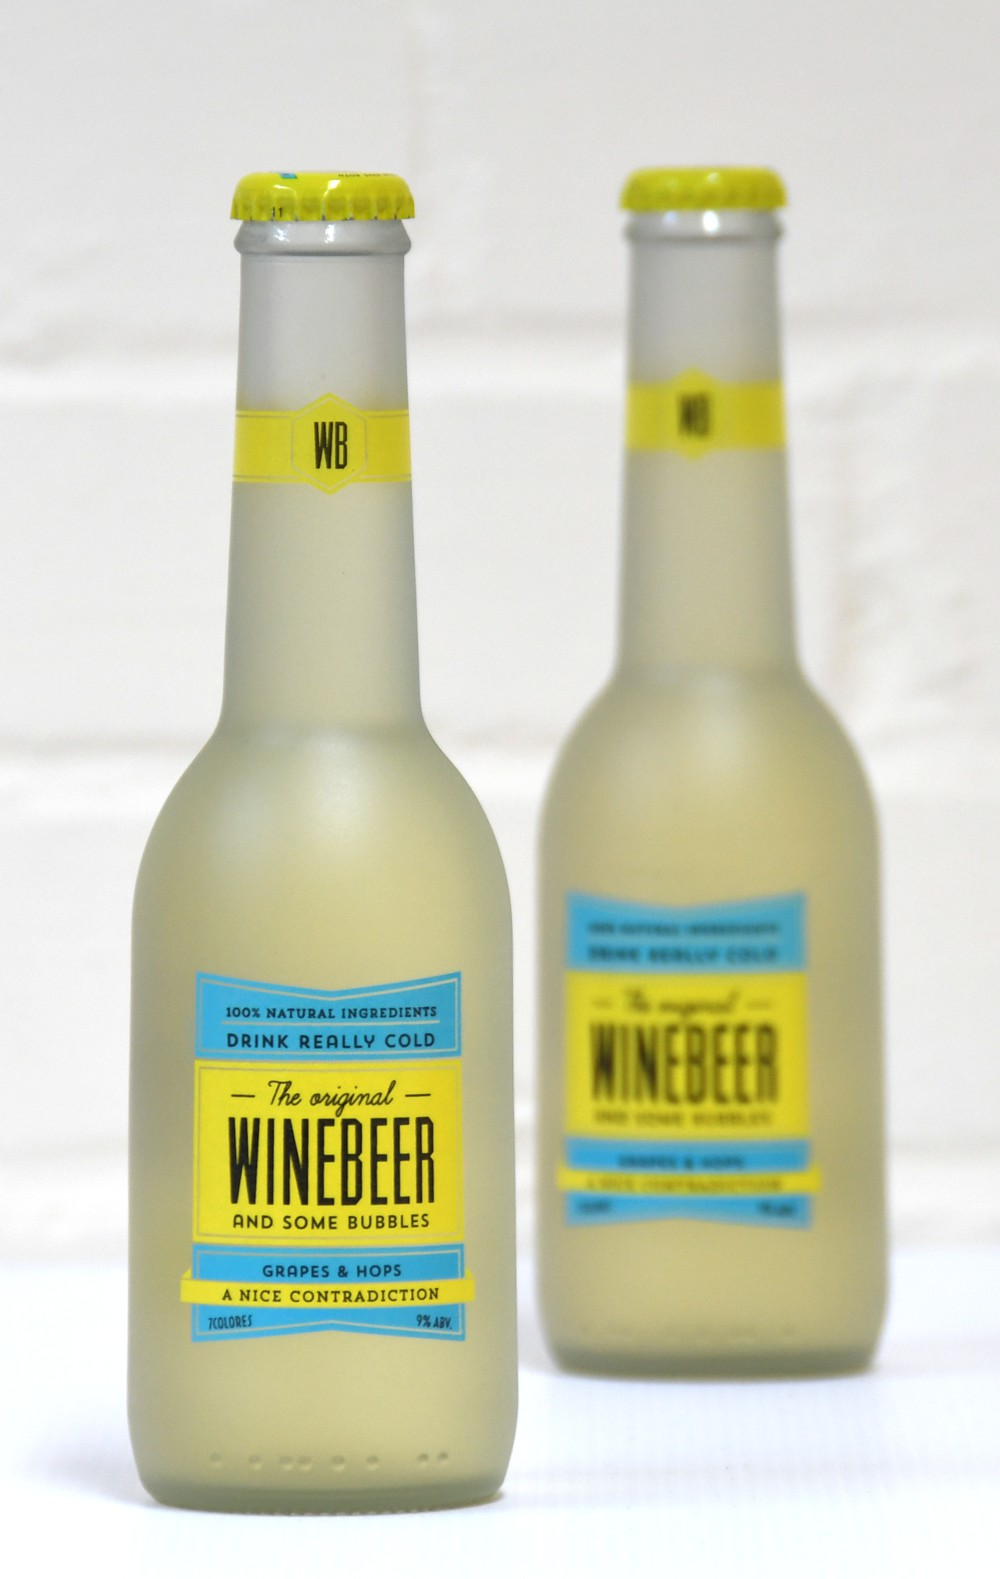 Find a new taste and alcohol experience with WINEBEER, the hoppy wine perfect for sharing with friends